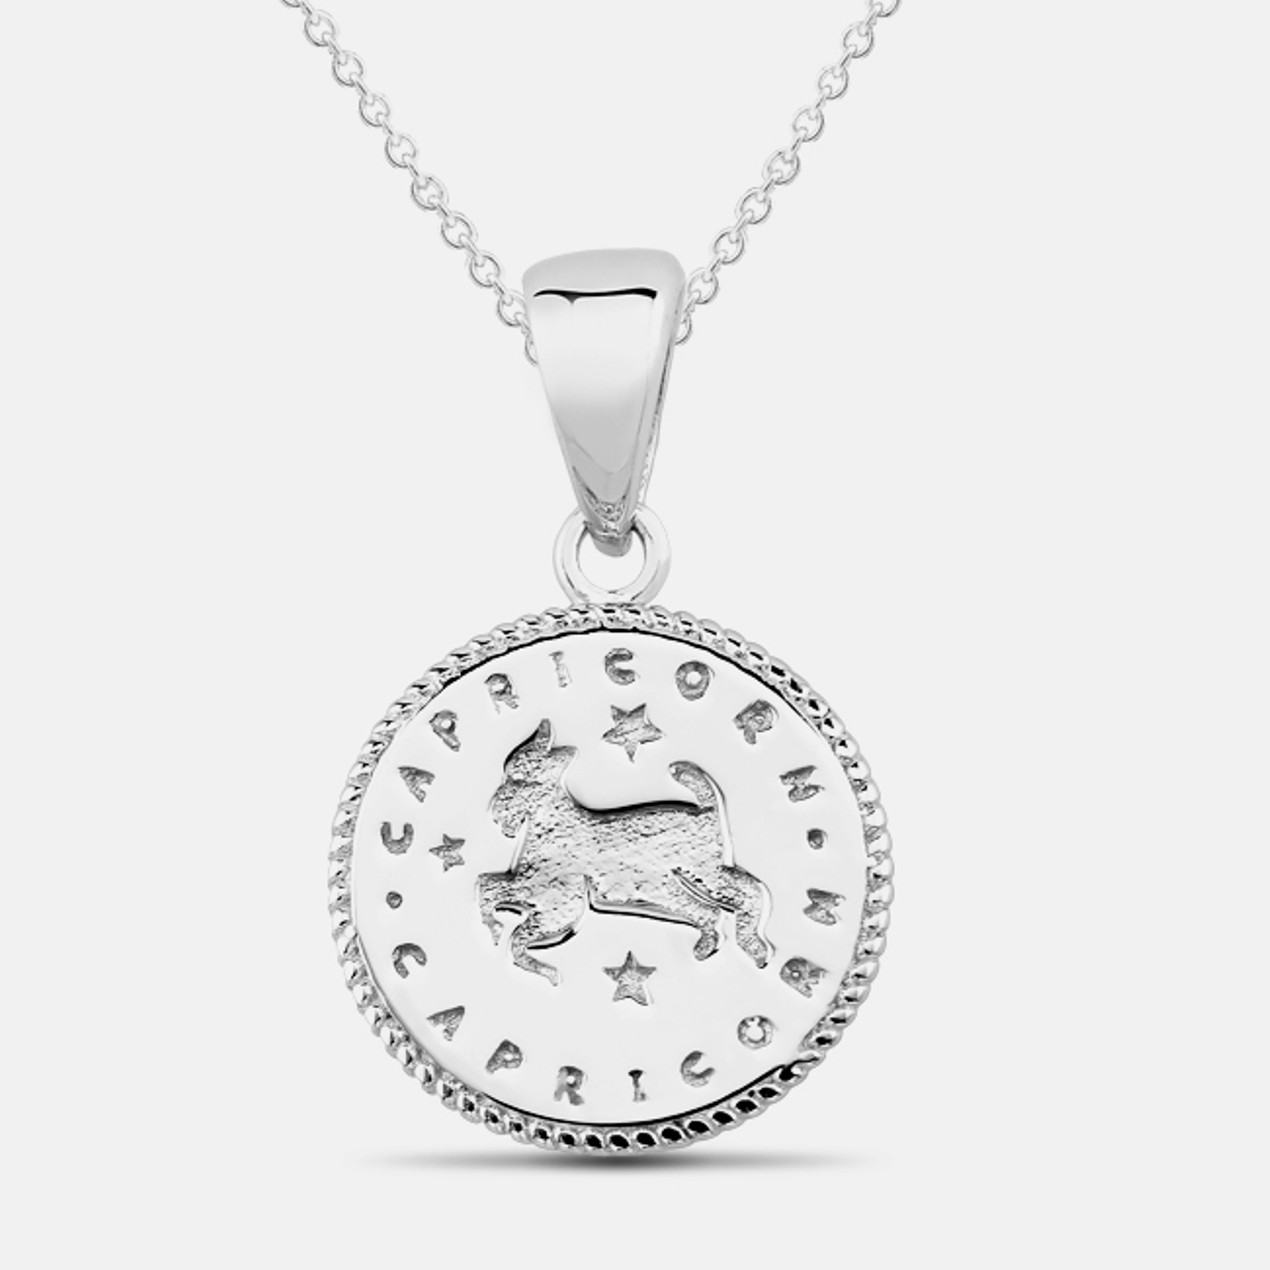 a1fed98cb Tiffany Inspired Horoscope Necklace - Capricorn. Tanga Featured Deal